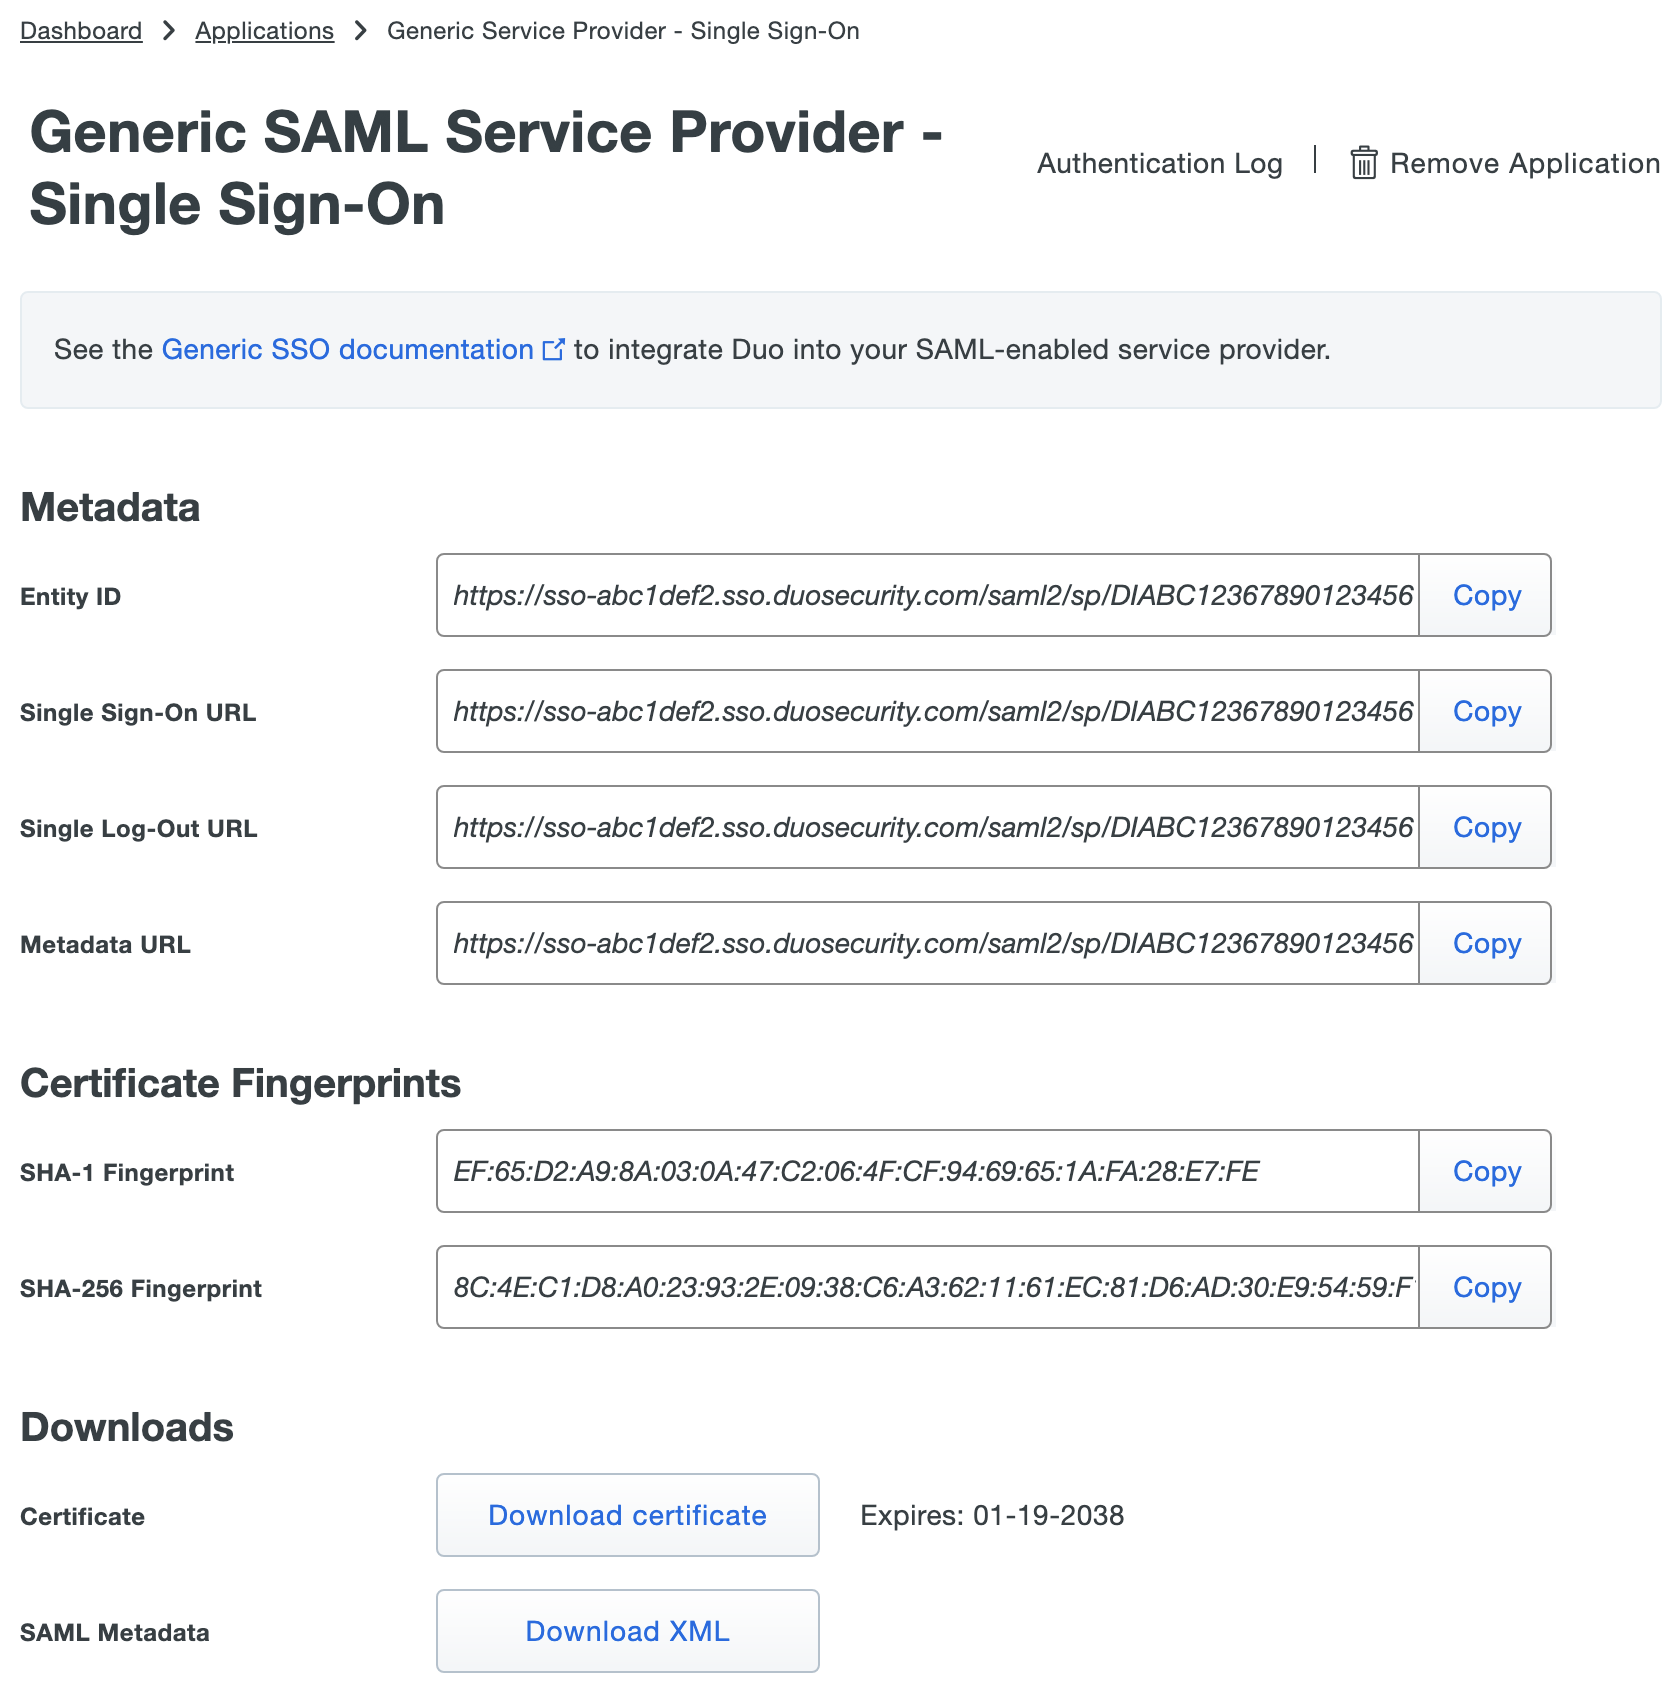 Metadata for configuring generic service providers